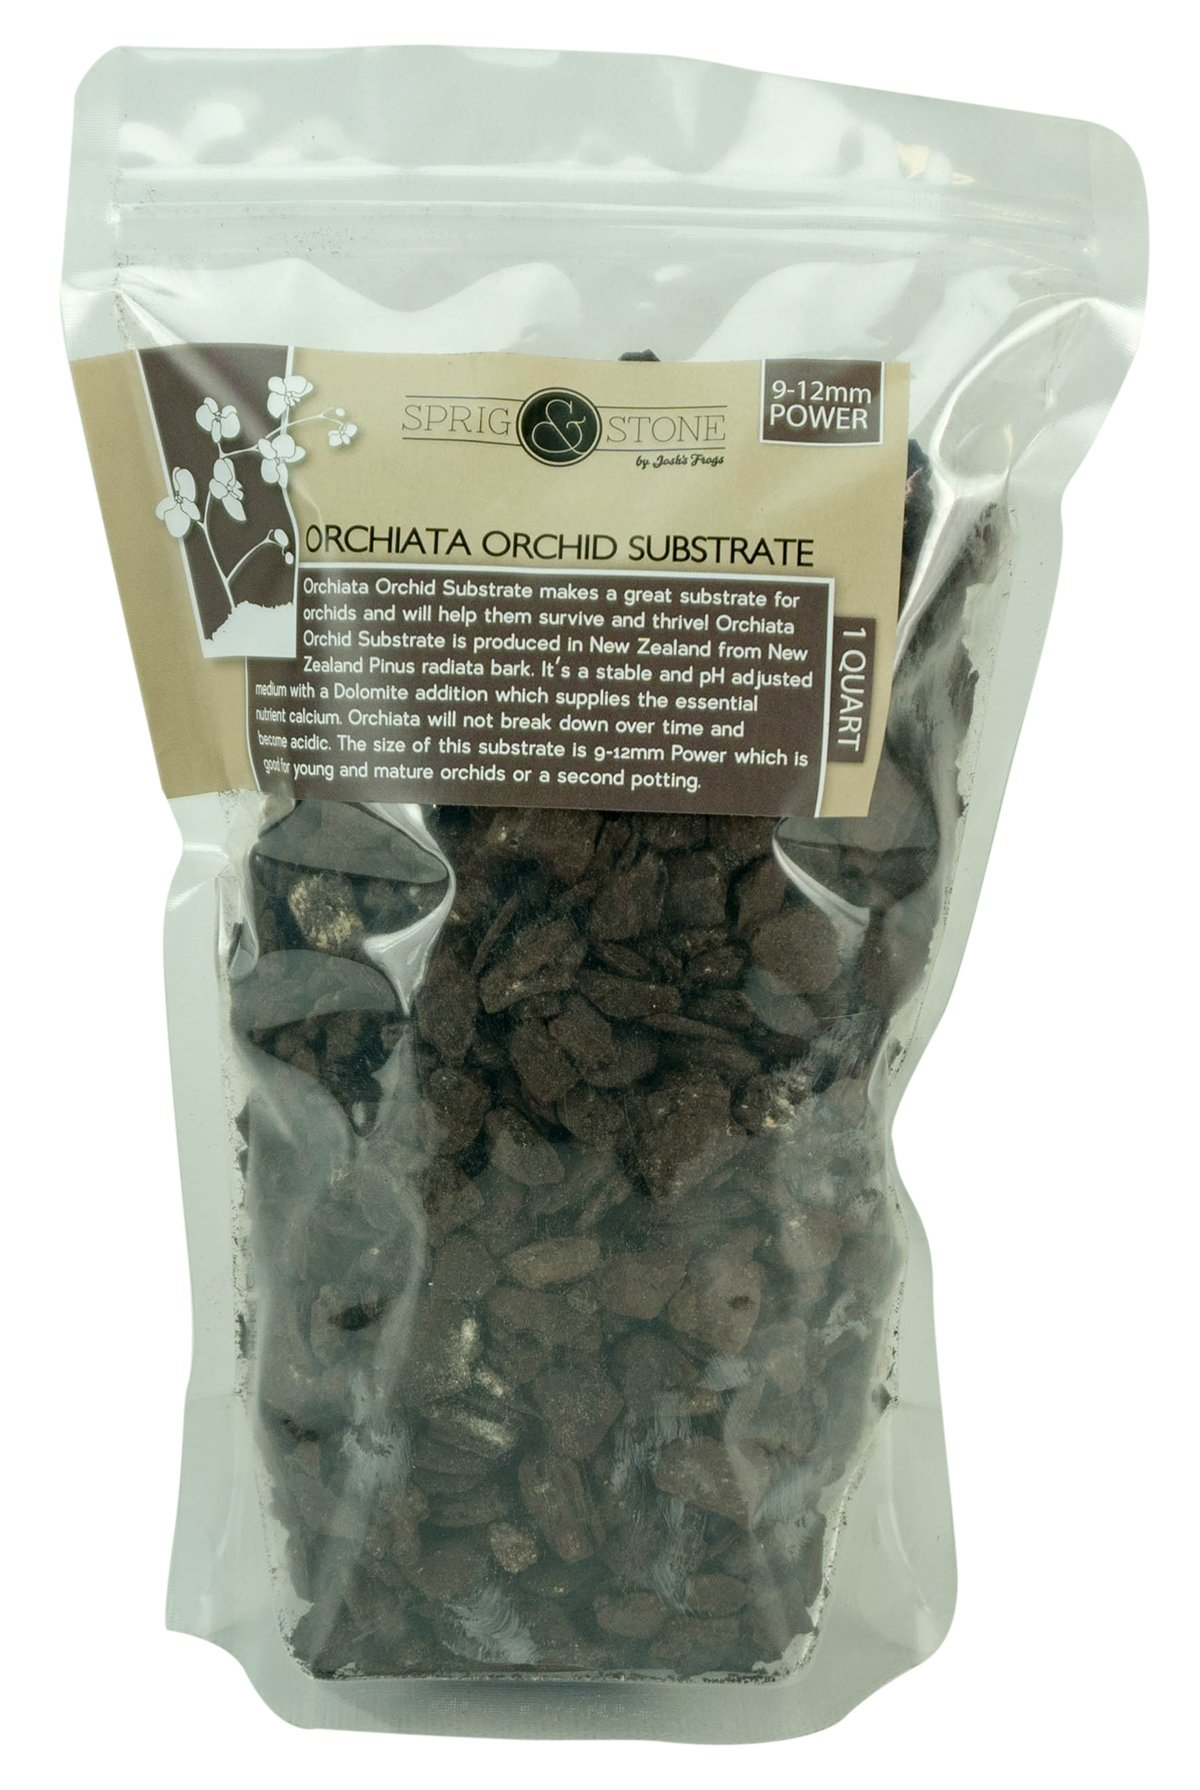 Orchiata Orchid Substrate - 9-12mm POWER (1 Quart) by Sprig & Stone (Image #1)